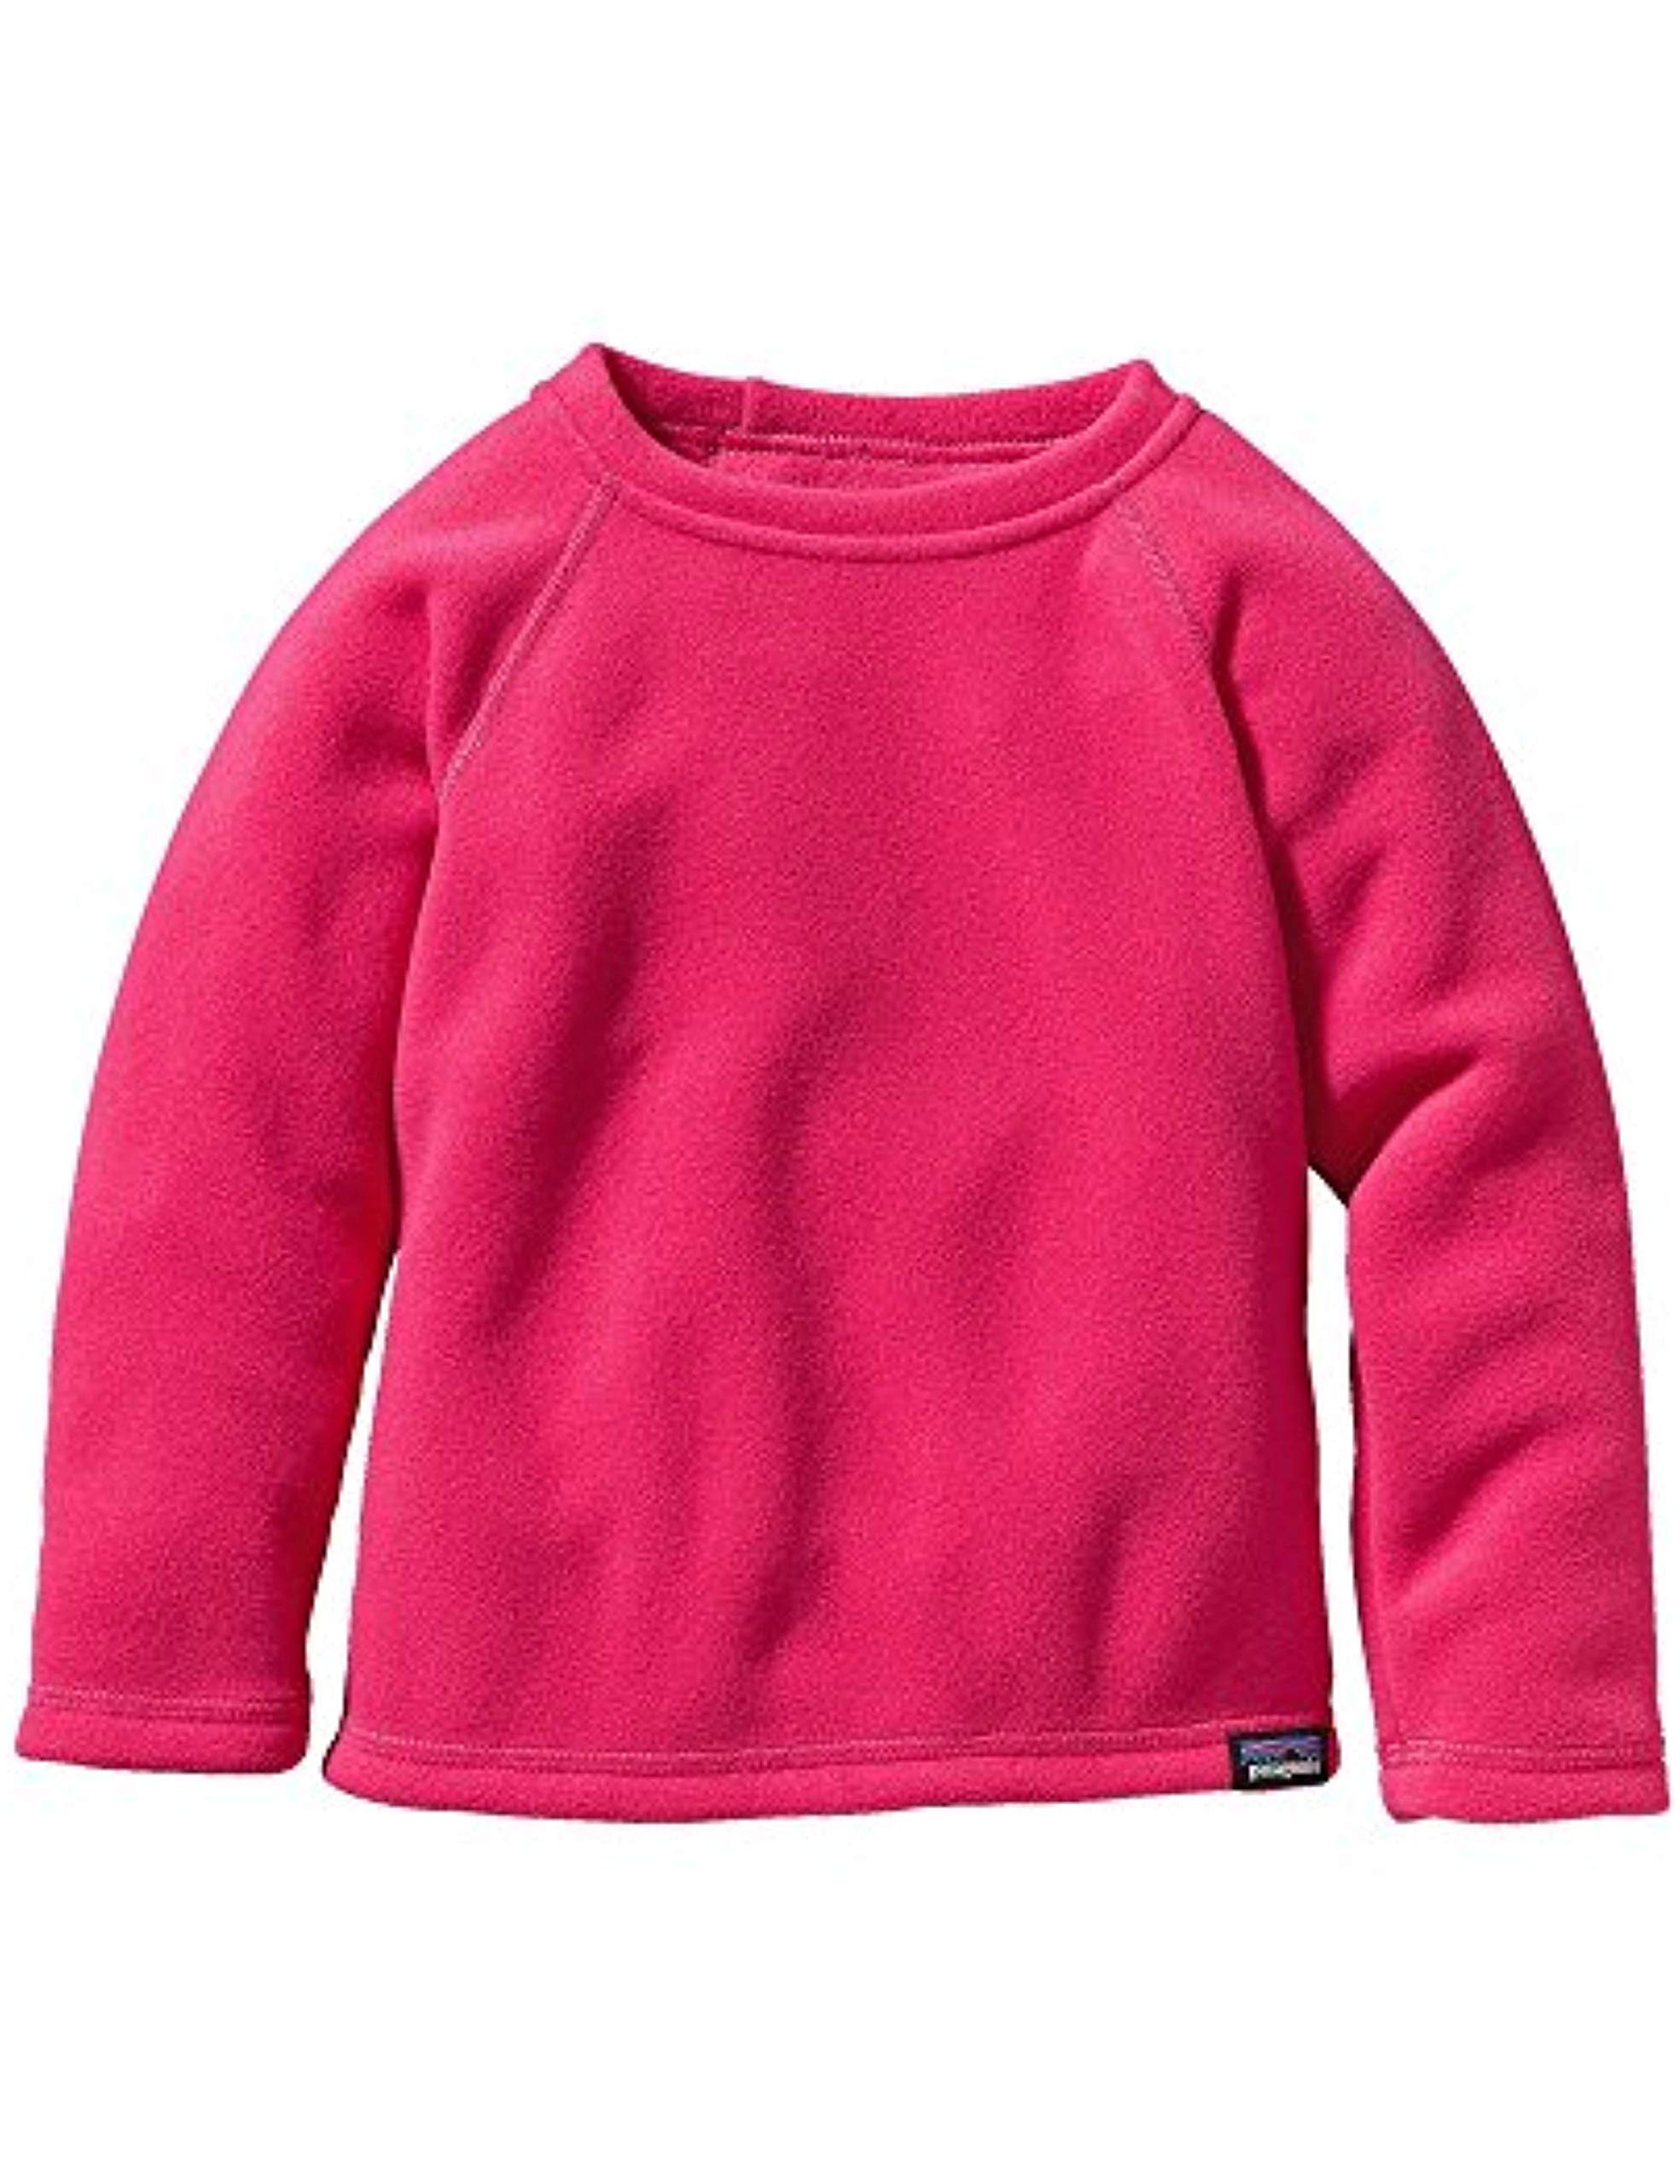 Patagonia Baby Micro D Fleece Crew 3-6 Month Pink